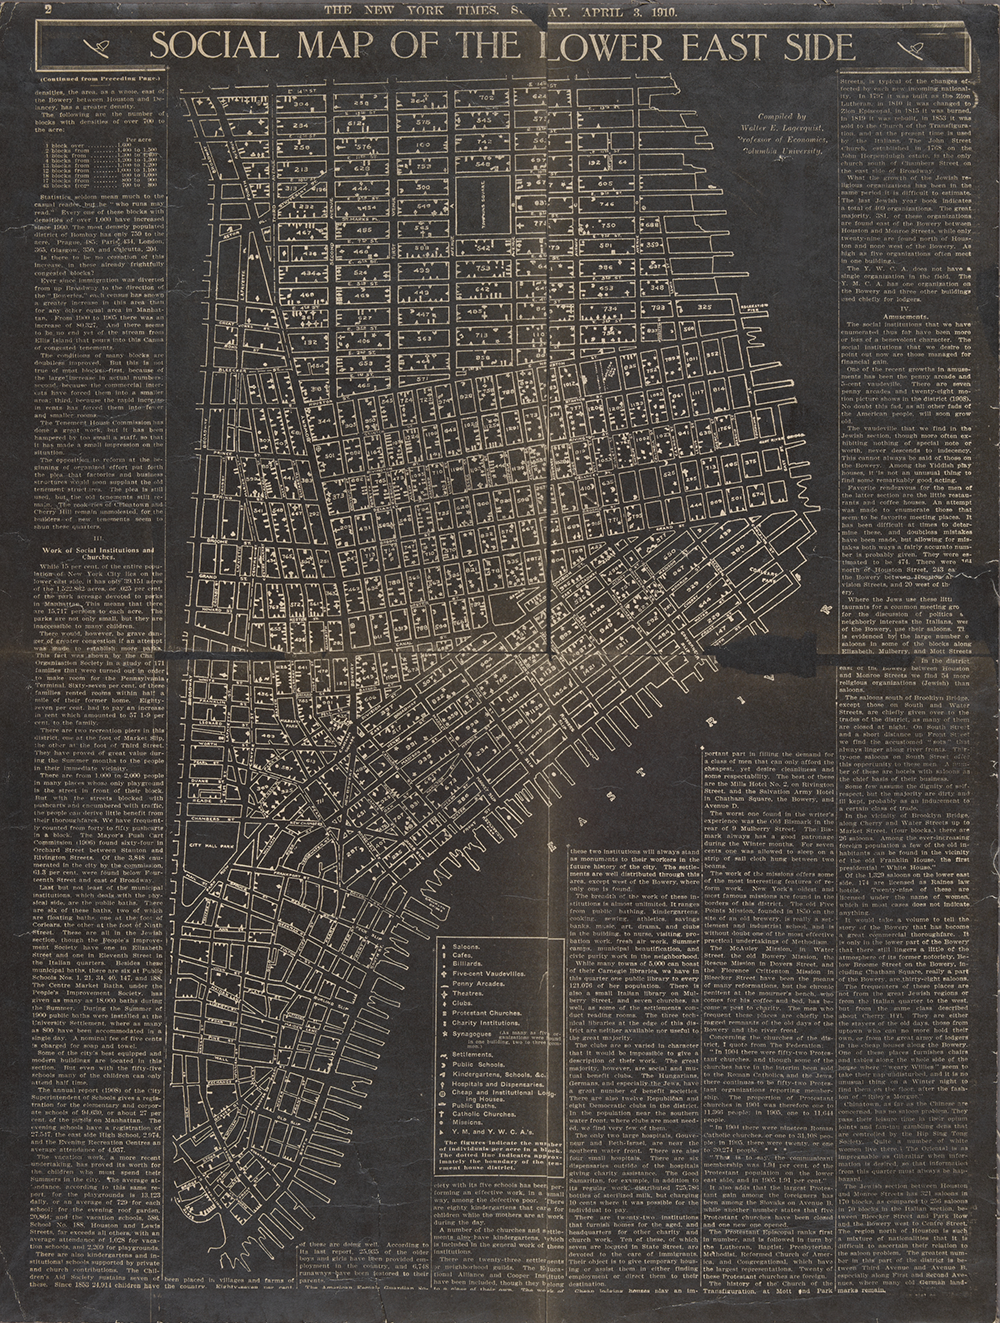 Social map of the Lower East Side, compiled by Walter E. Lagerquist, 1910. The New York Public Library, Lionel Pincus and Princess Firyal Map Division.